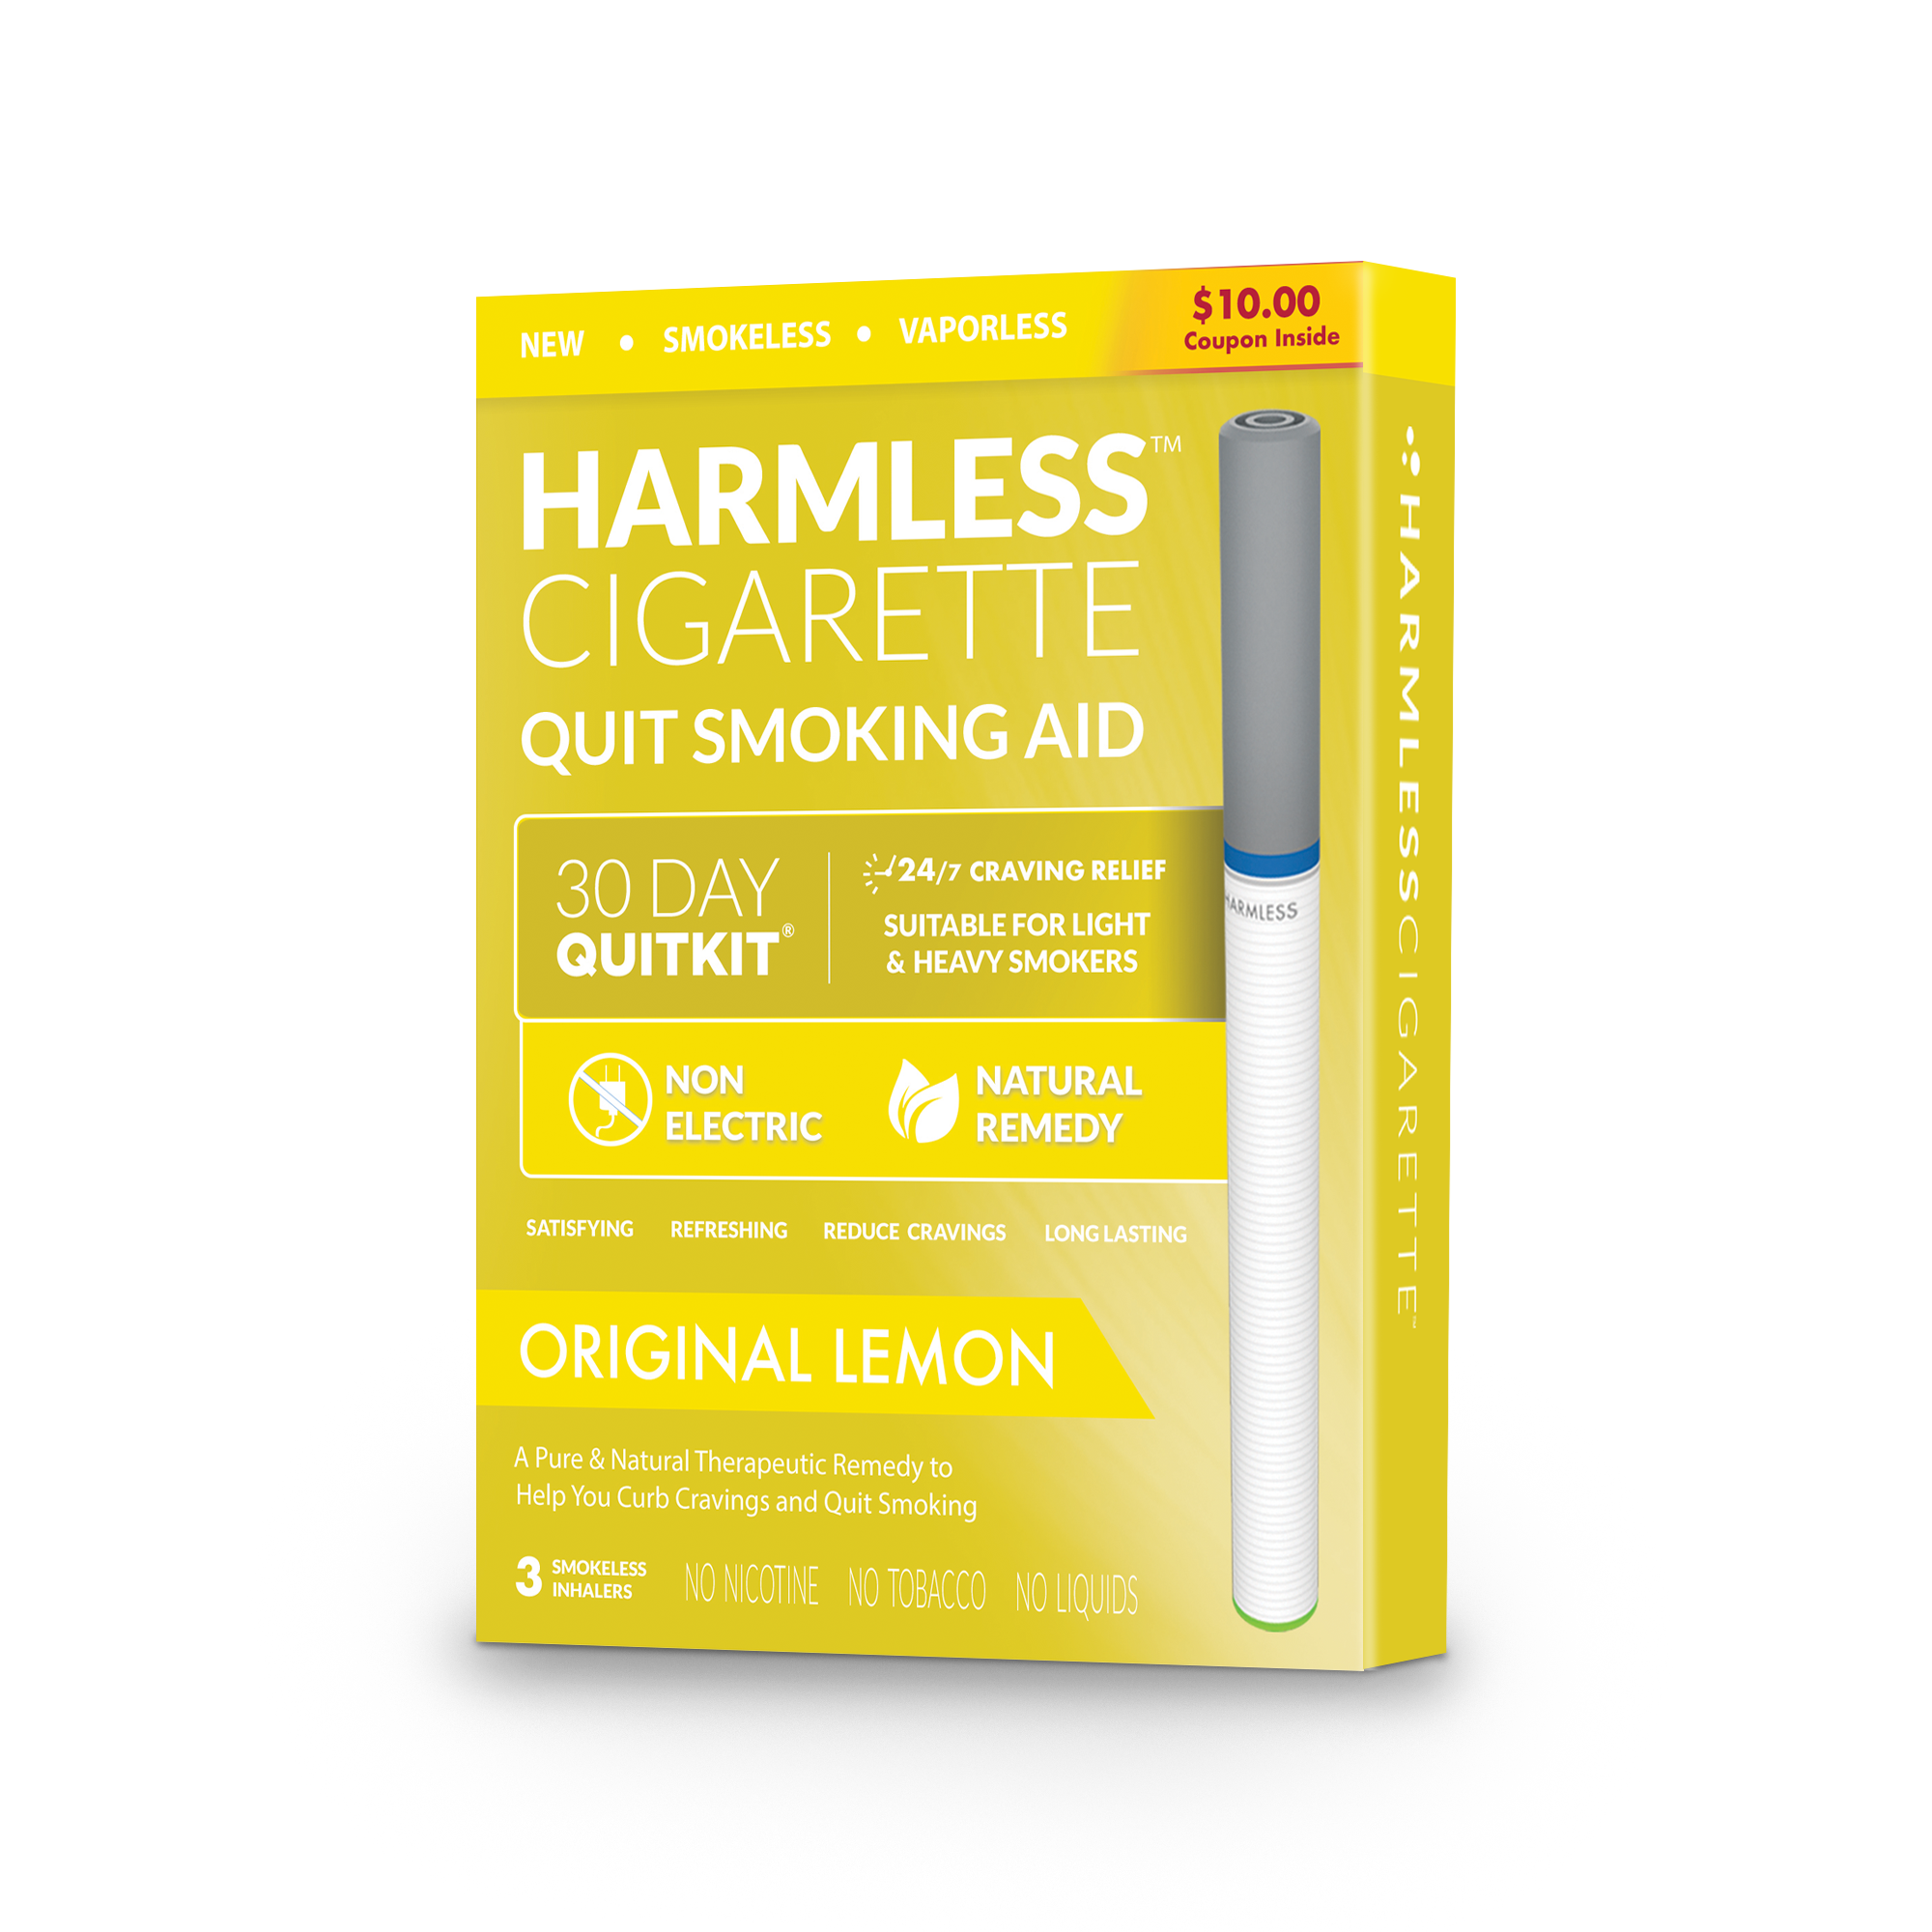 Smoking Cessation Product / Stop Smoking Aid / Satisfy & Reduce Cravings / Natural Habit Replacement And Quit Smoking Solution To Help You Successfully Quit Smoking